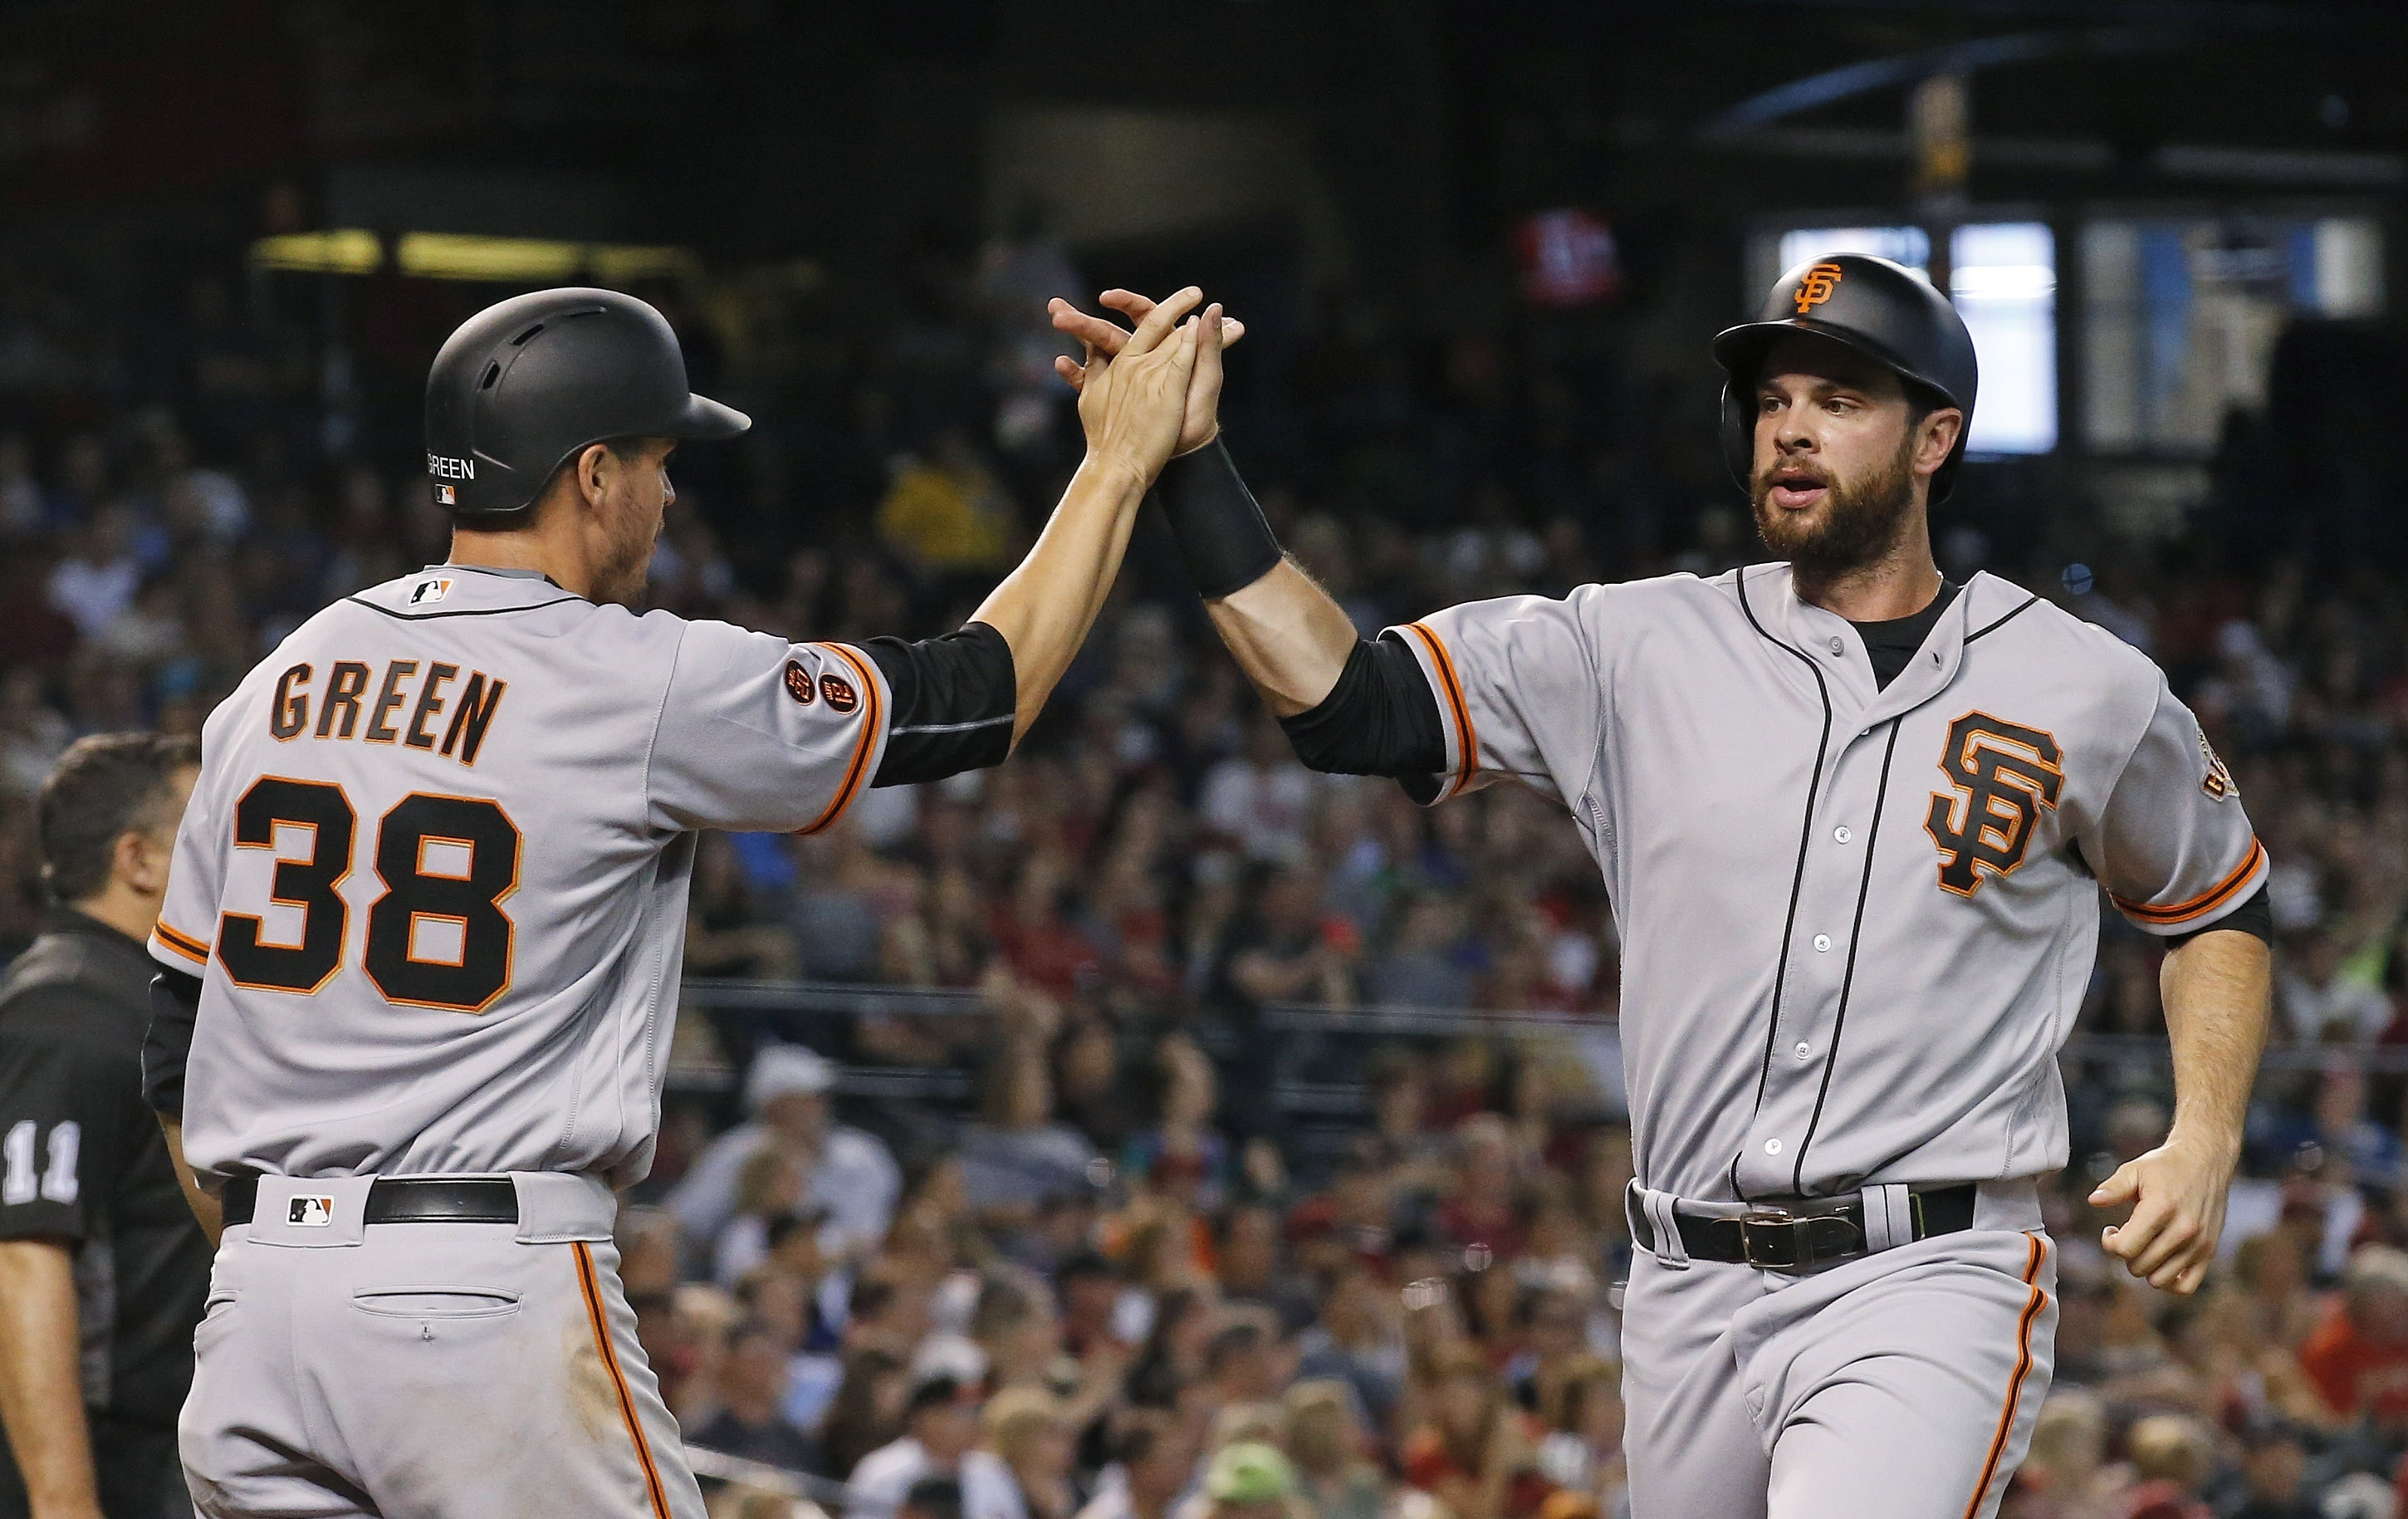 San Francisco Giants' Brandon Belt, right, and Grant Green (38) high-five after they scored runs against the Arizona Diamondbacks during the third inning of a baseball game Sunday, July 3, 2016, in Phoenix. (AP Photo/Ross D. Franklin)